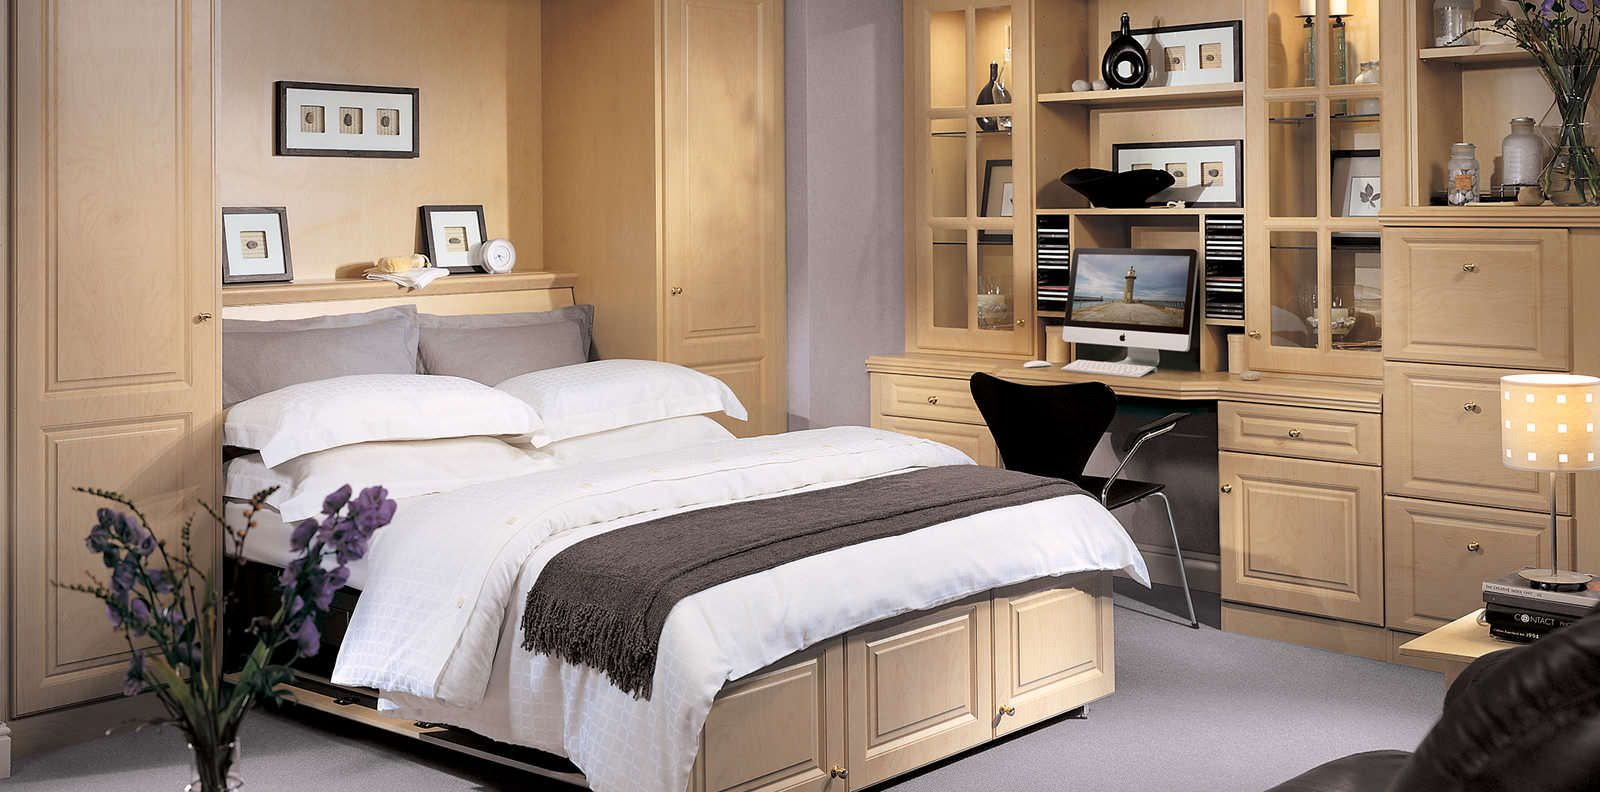 Fitted Hidden Bed Storage in Bedroom with Maple Wood